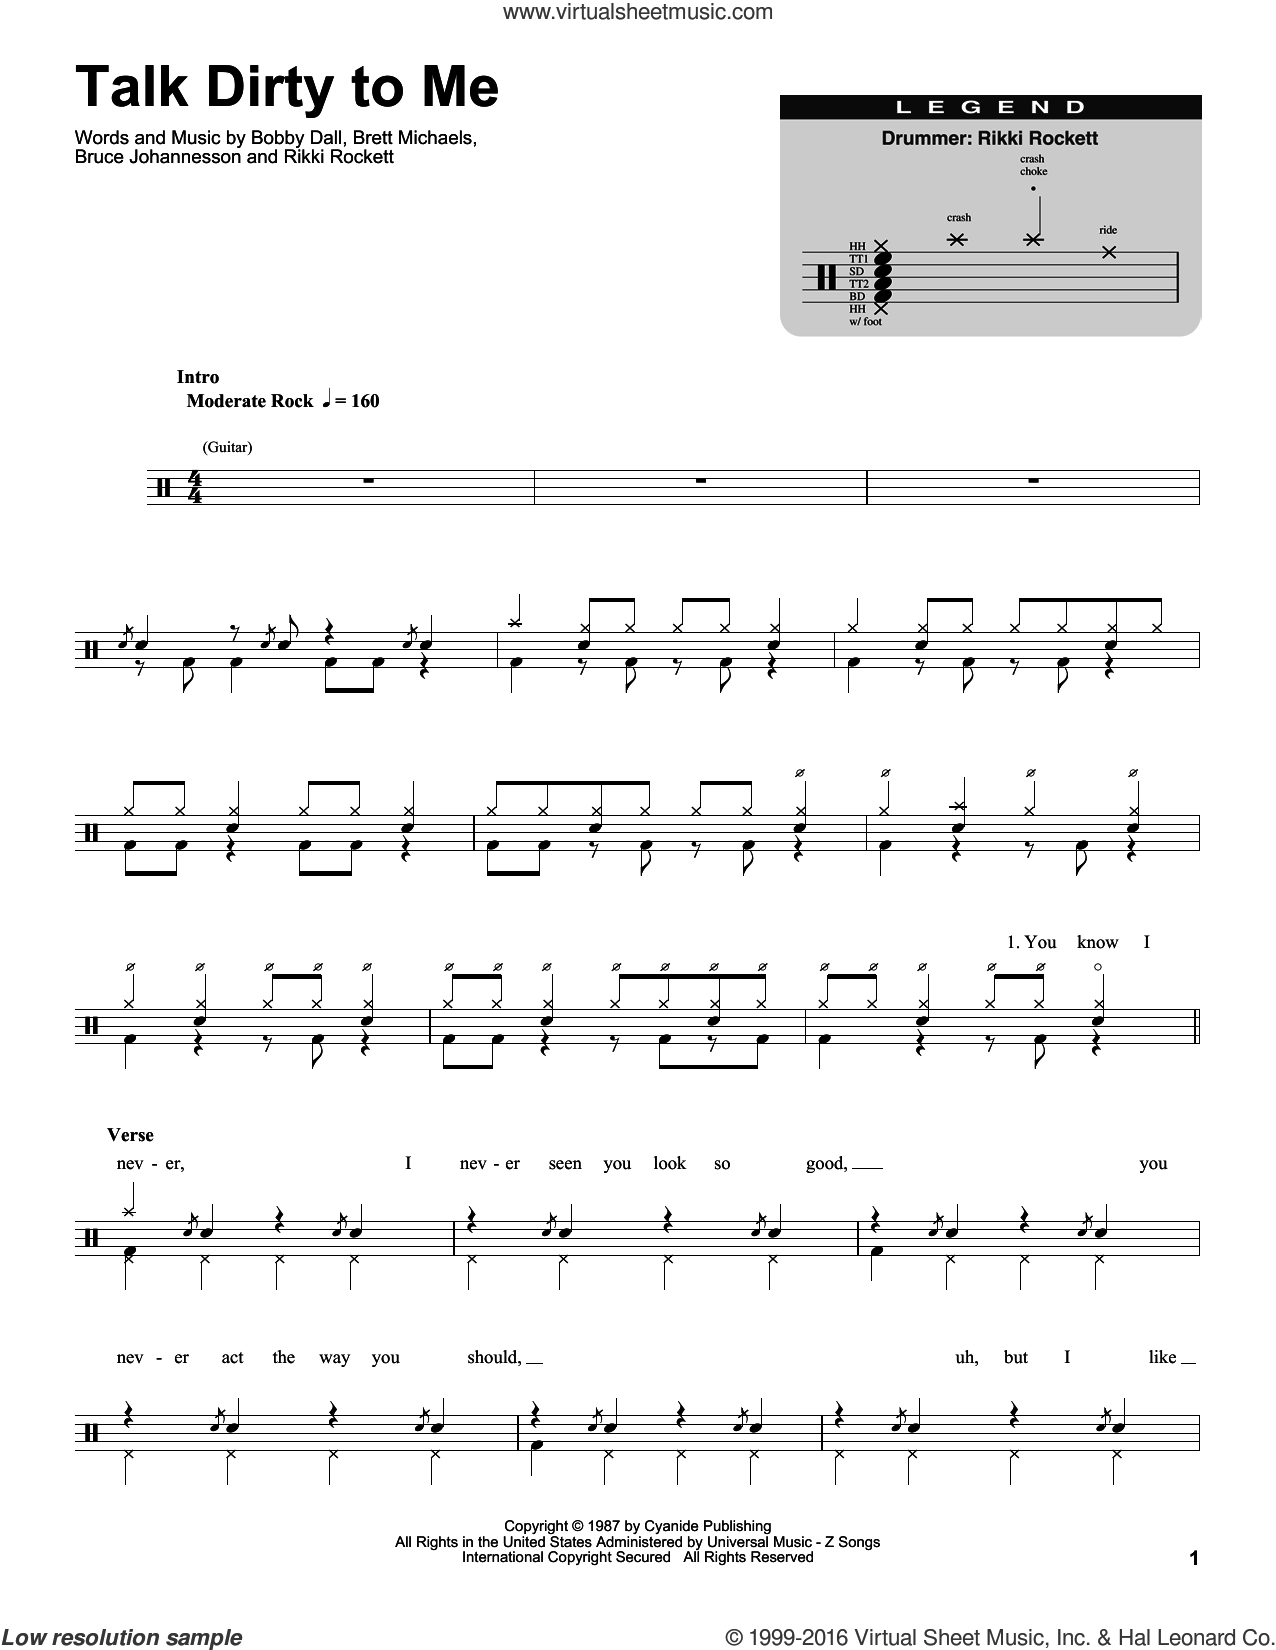 Talk Dirty To Me sheet music for drums by Poison. Score Image Preview.